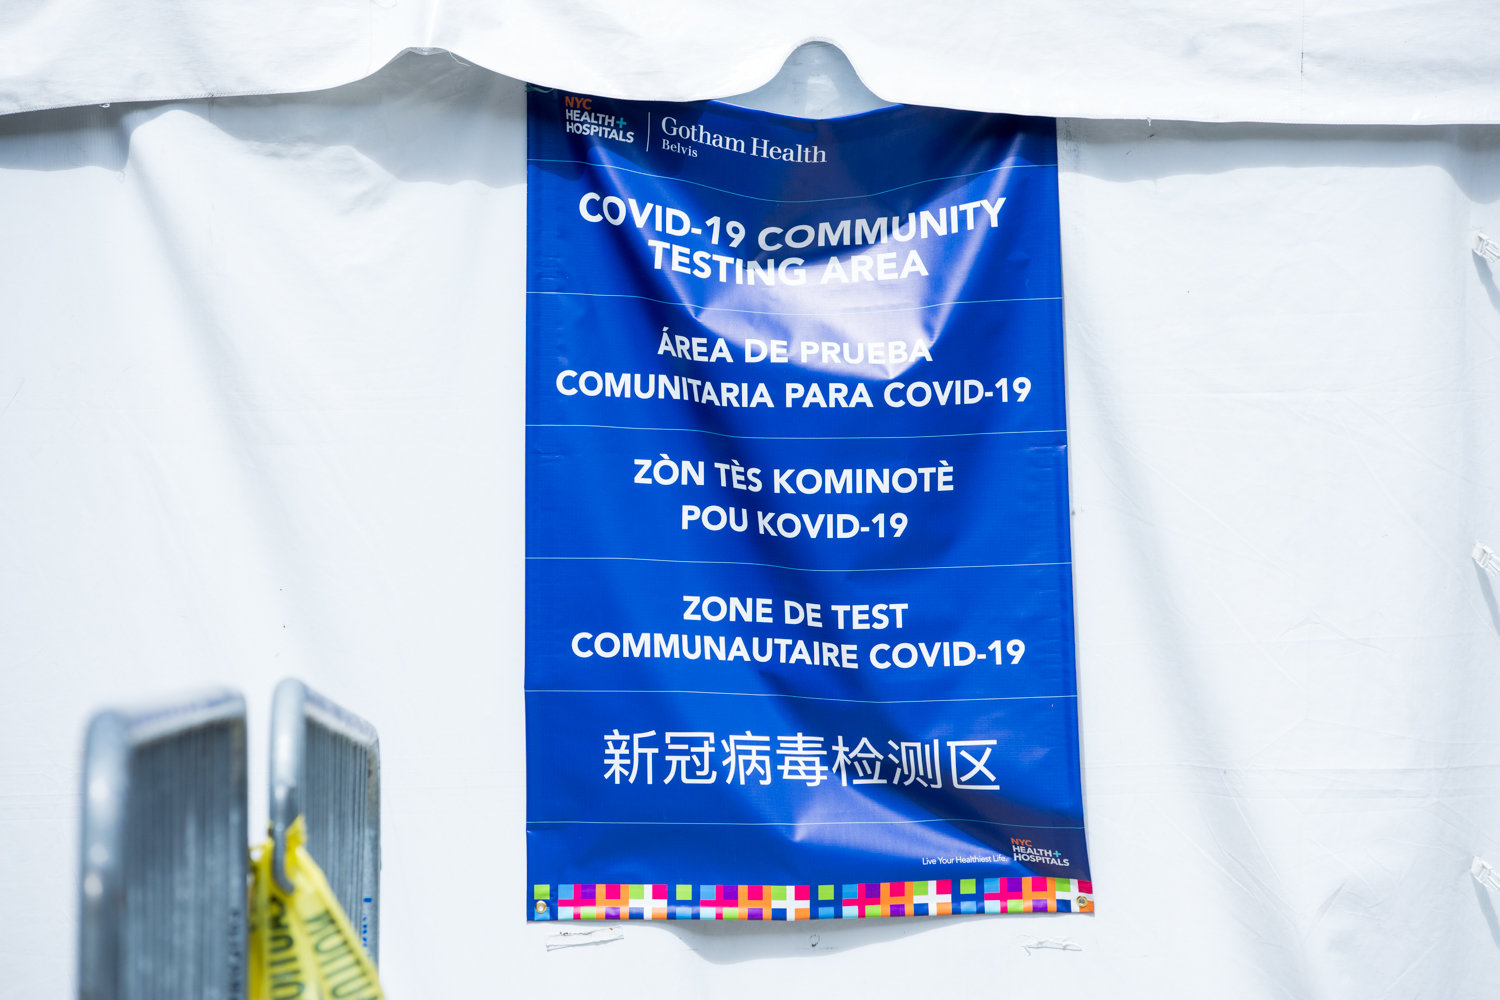 A sign on a tent informs people that NYC Health + Hospitals/Gotham Health, Belvis, is a diagnostic testing area for the coronavirus that causes COVID-19 — one of six testing centers in the borough.